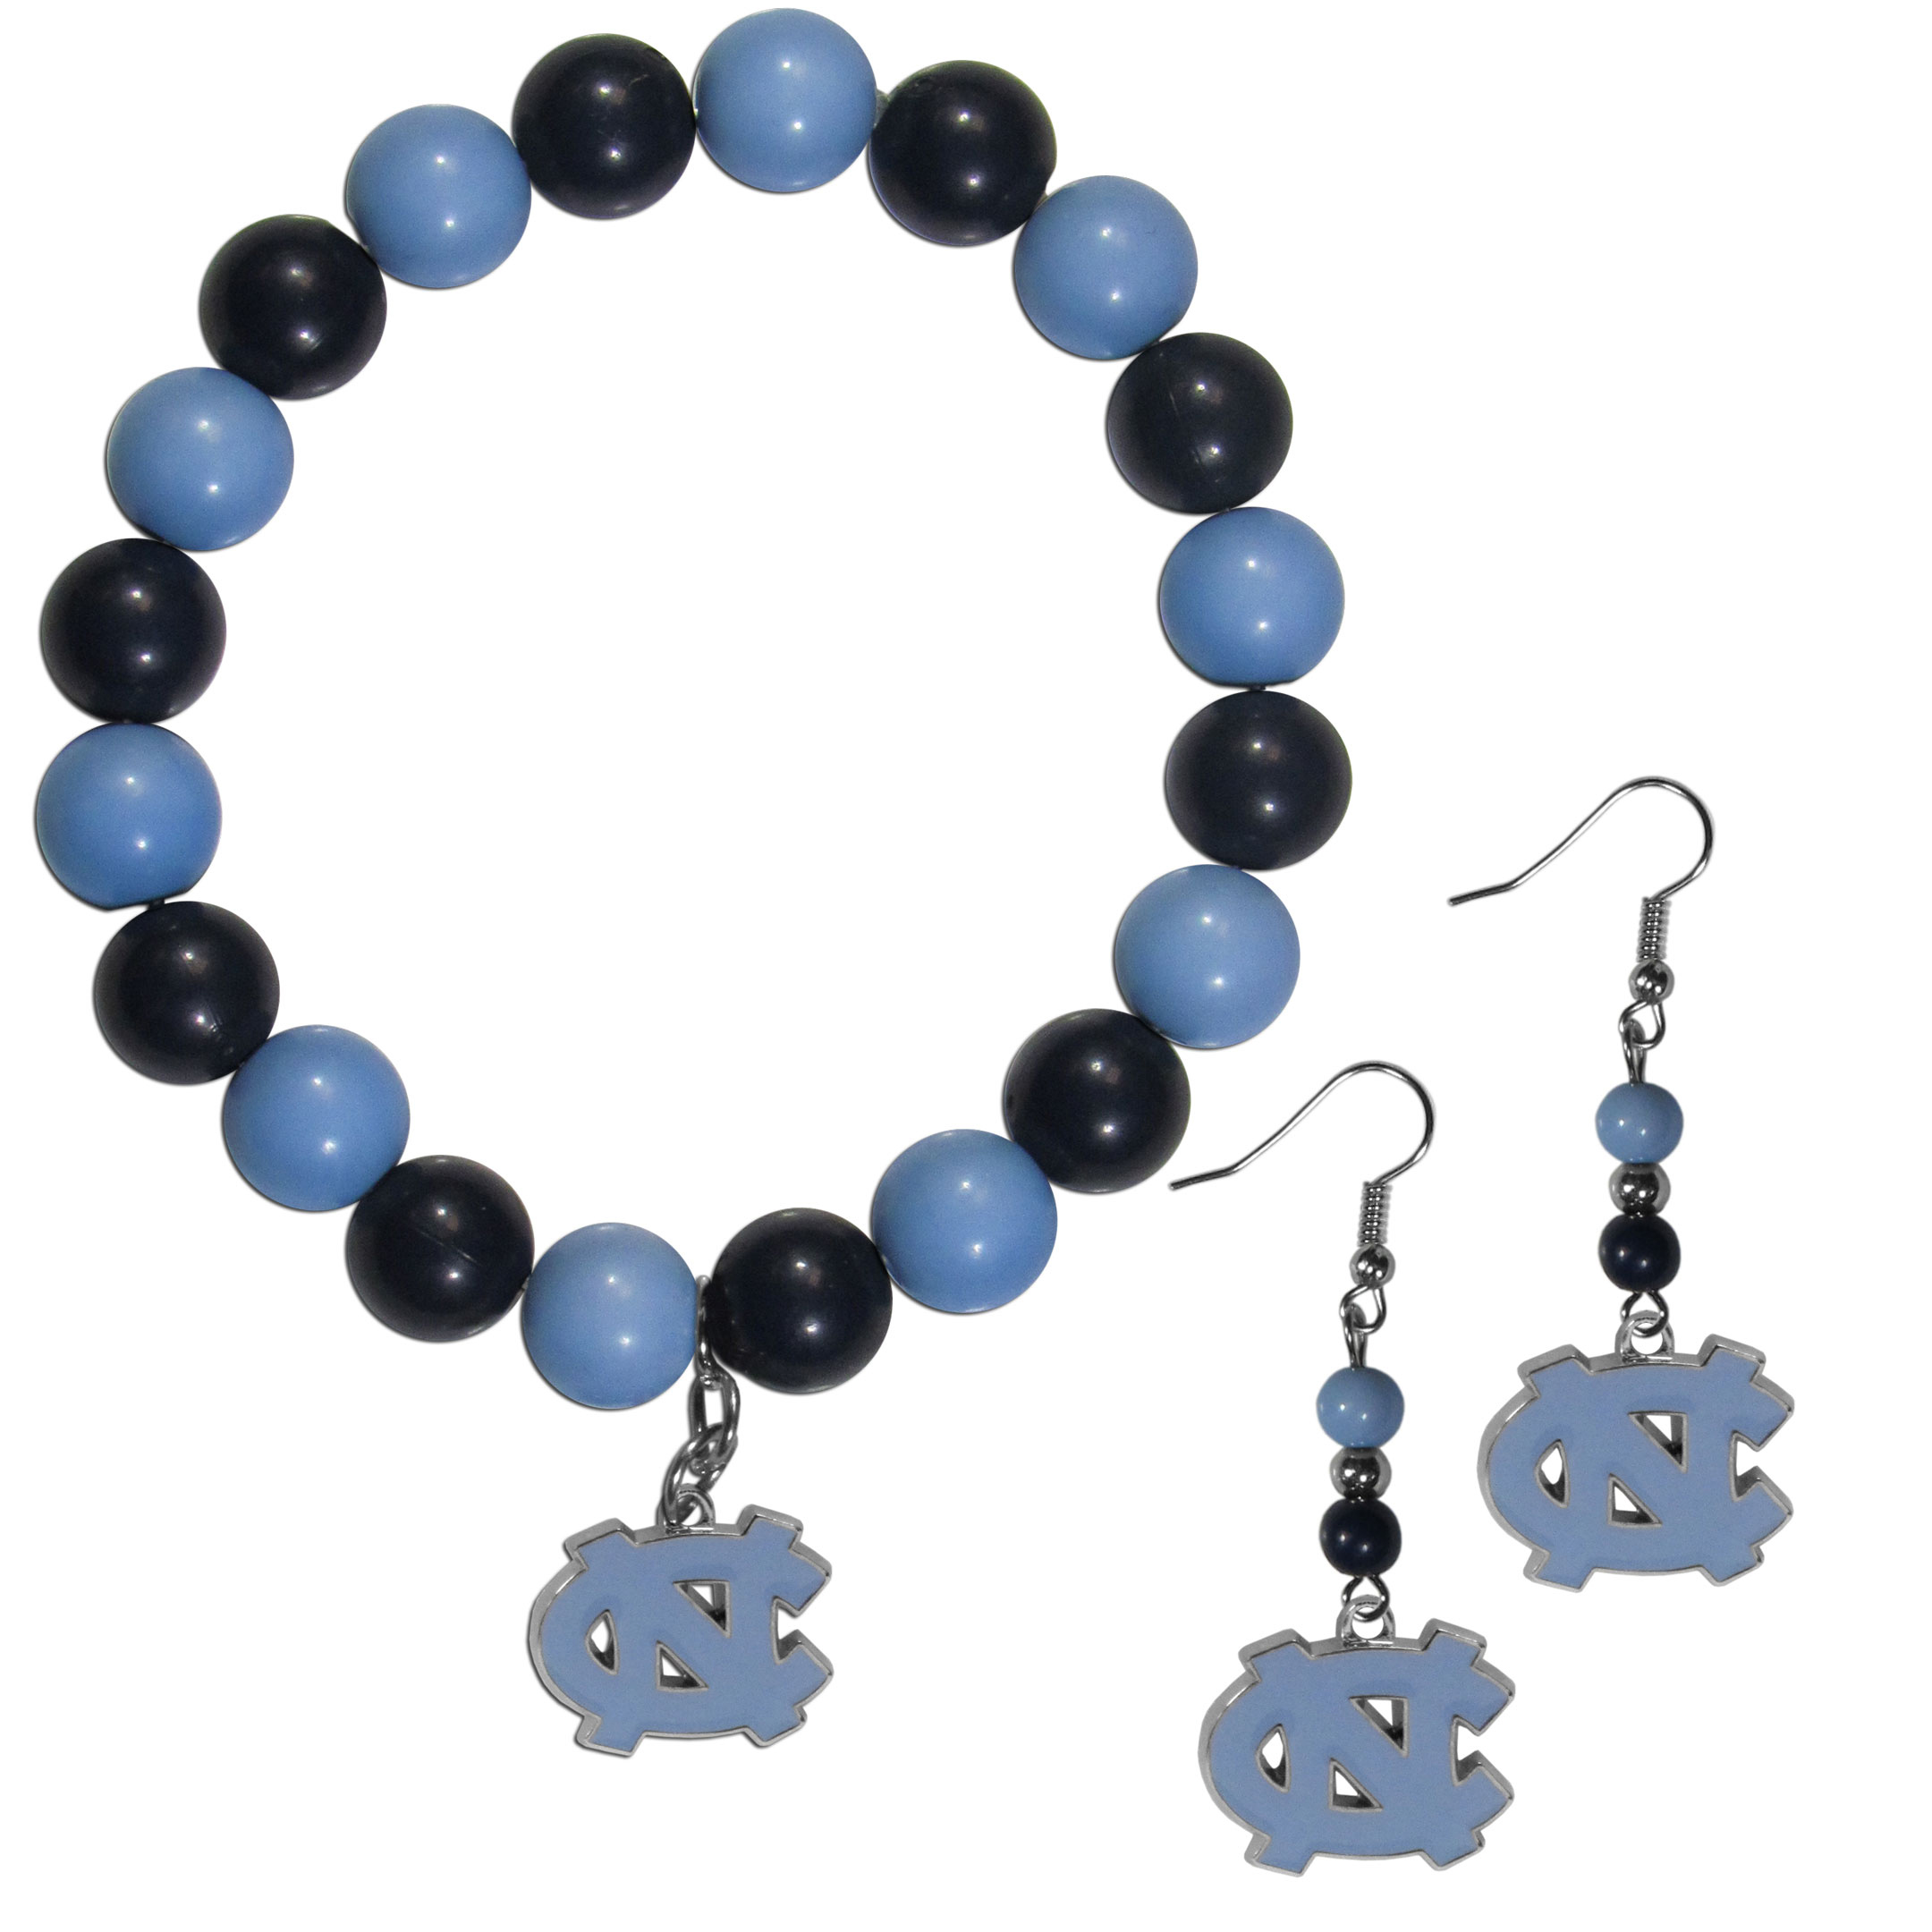 N. Carolina Tar Heels Fan Bead Earrings and Bracelet Set - This fun and colorful N. Carolina Tar Heels fan bead jewelry set is fun and casual with eye-catching beads in bright team colors. The fashionable dangle earrings feature a team colored beads that drop down to a carved and enameled charm. The stretch bracelet has larger matching beads that make a striking statement and have a matching team charm. These sassy yet sporty jewelry pieces make a perfect gift for any female fan. Spice up your game-day outfit with these fun colorful earrings and bracelet that are also cute enough for any day.